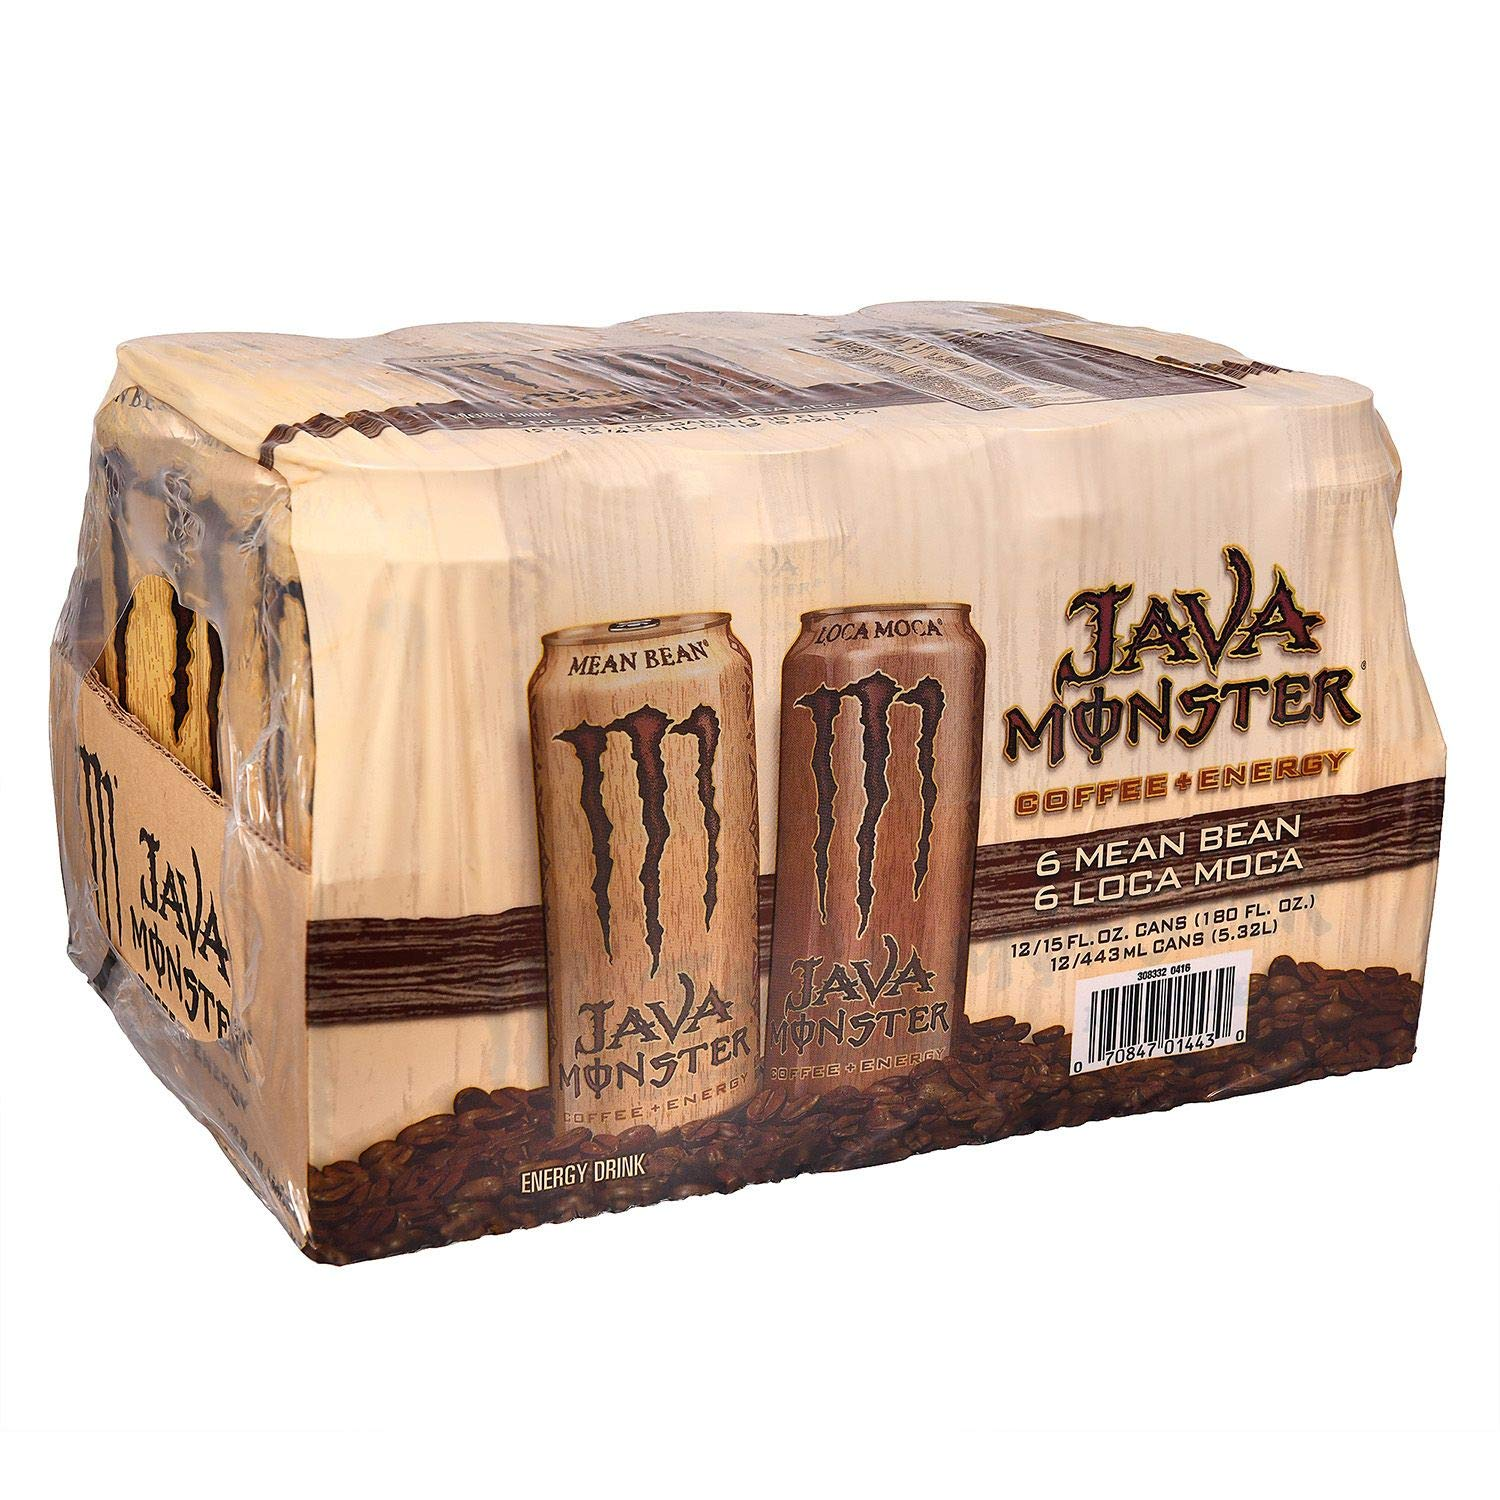 Monster Energy Coffee, Java Variety Pack 15 oz. cans, 12 ct. (pack of 3) A1